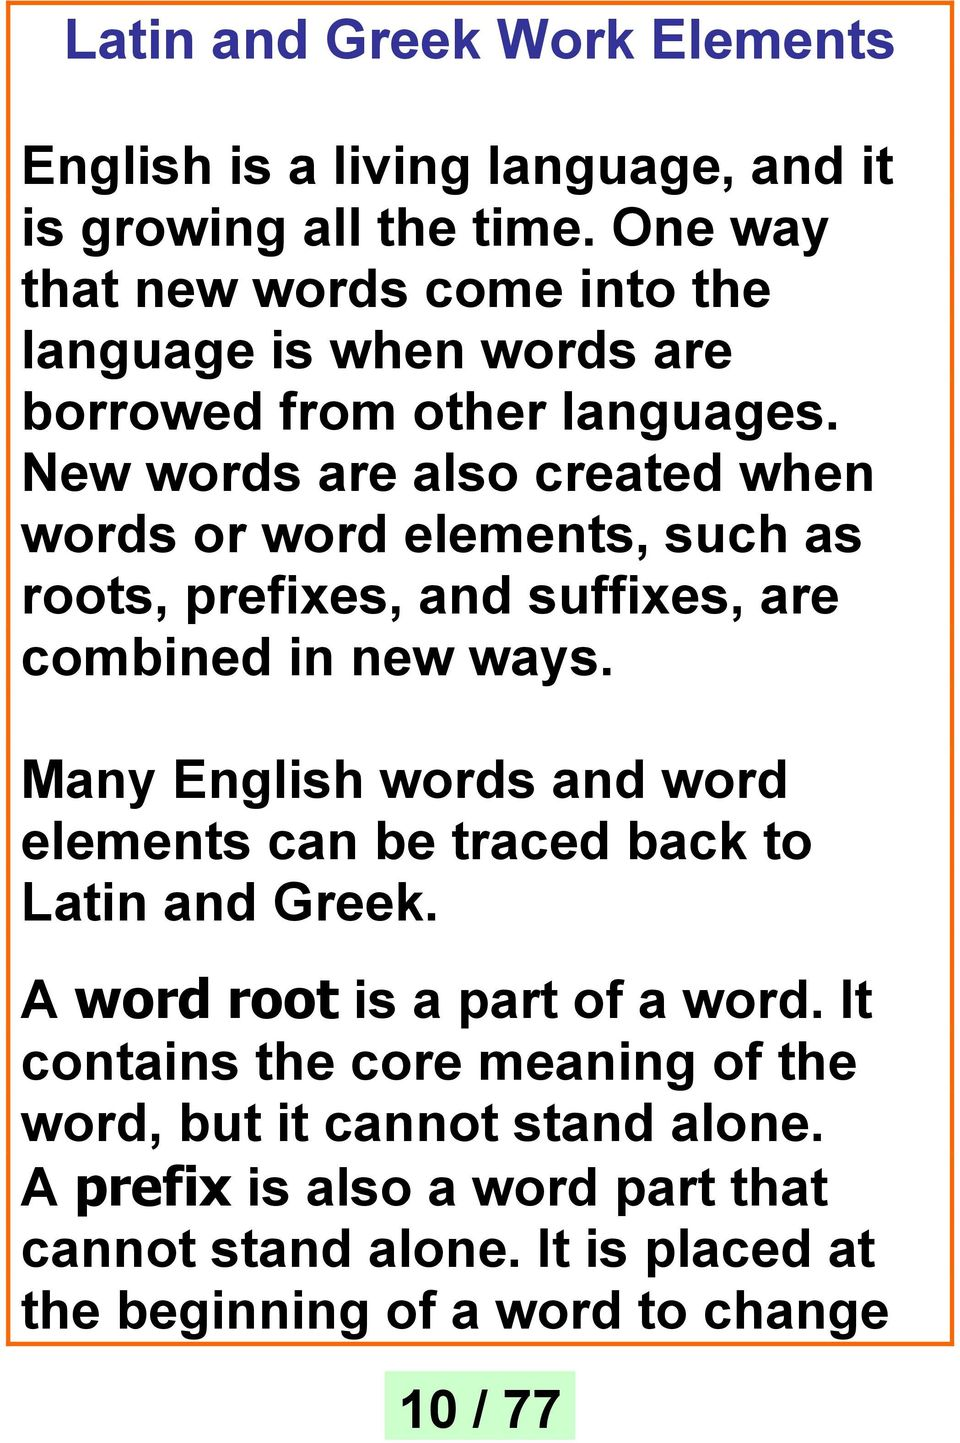 New words are also created when words or word elements, such as roots, prefixes, and suffixes, are combined in new ways.